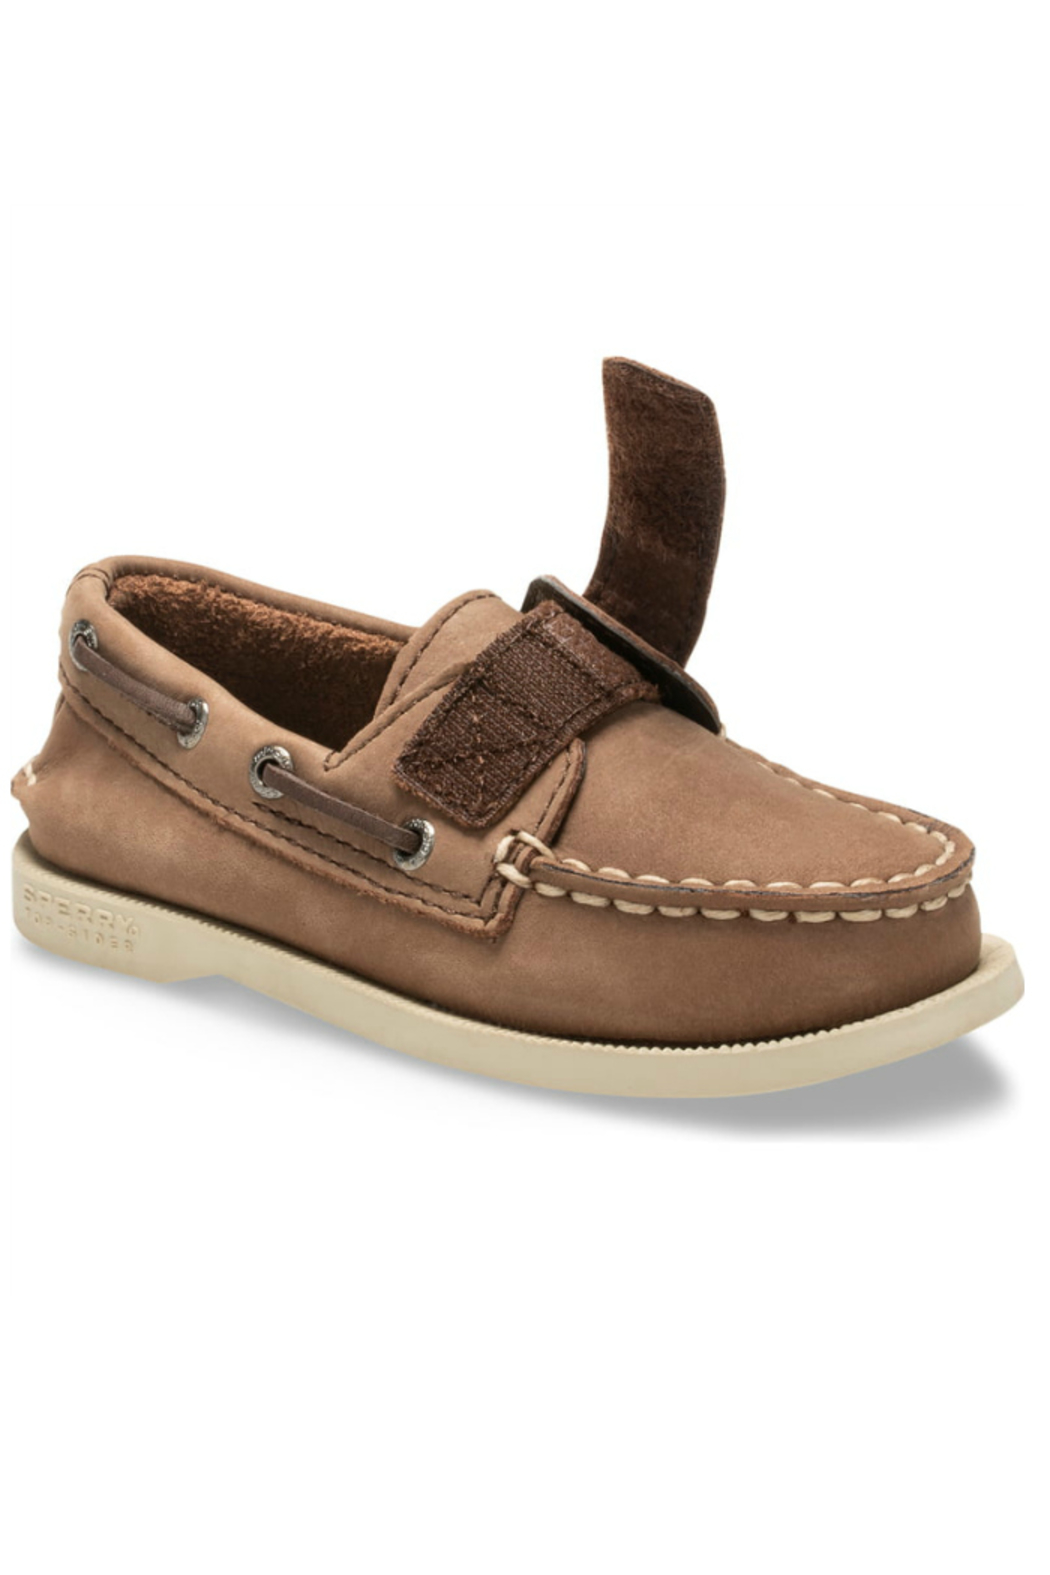 Sperry SPERRY A/O HL KIDS - Front Full Image